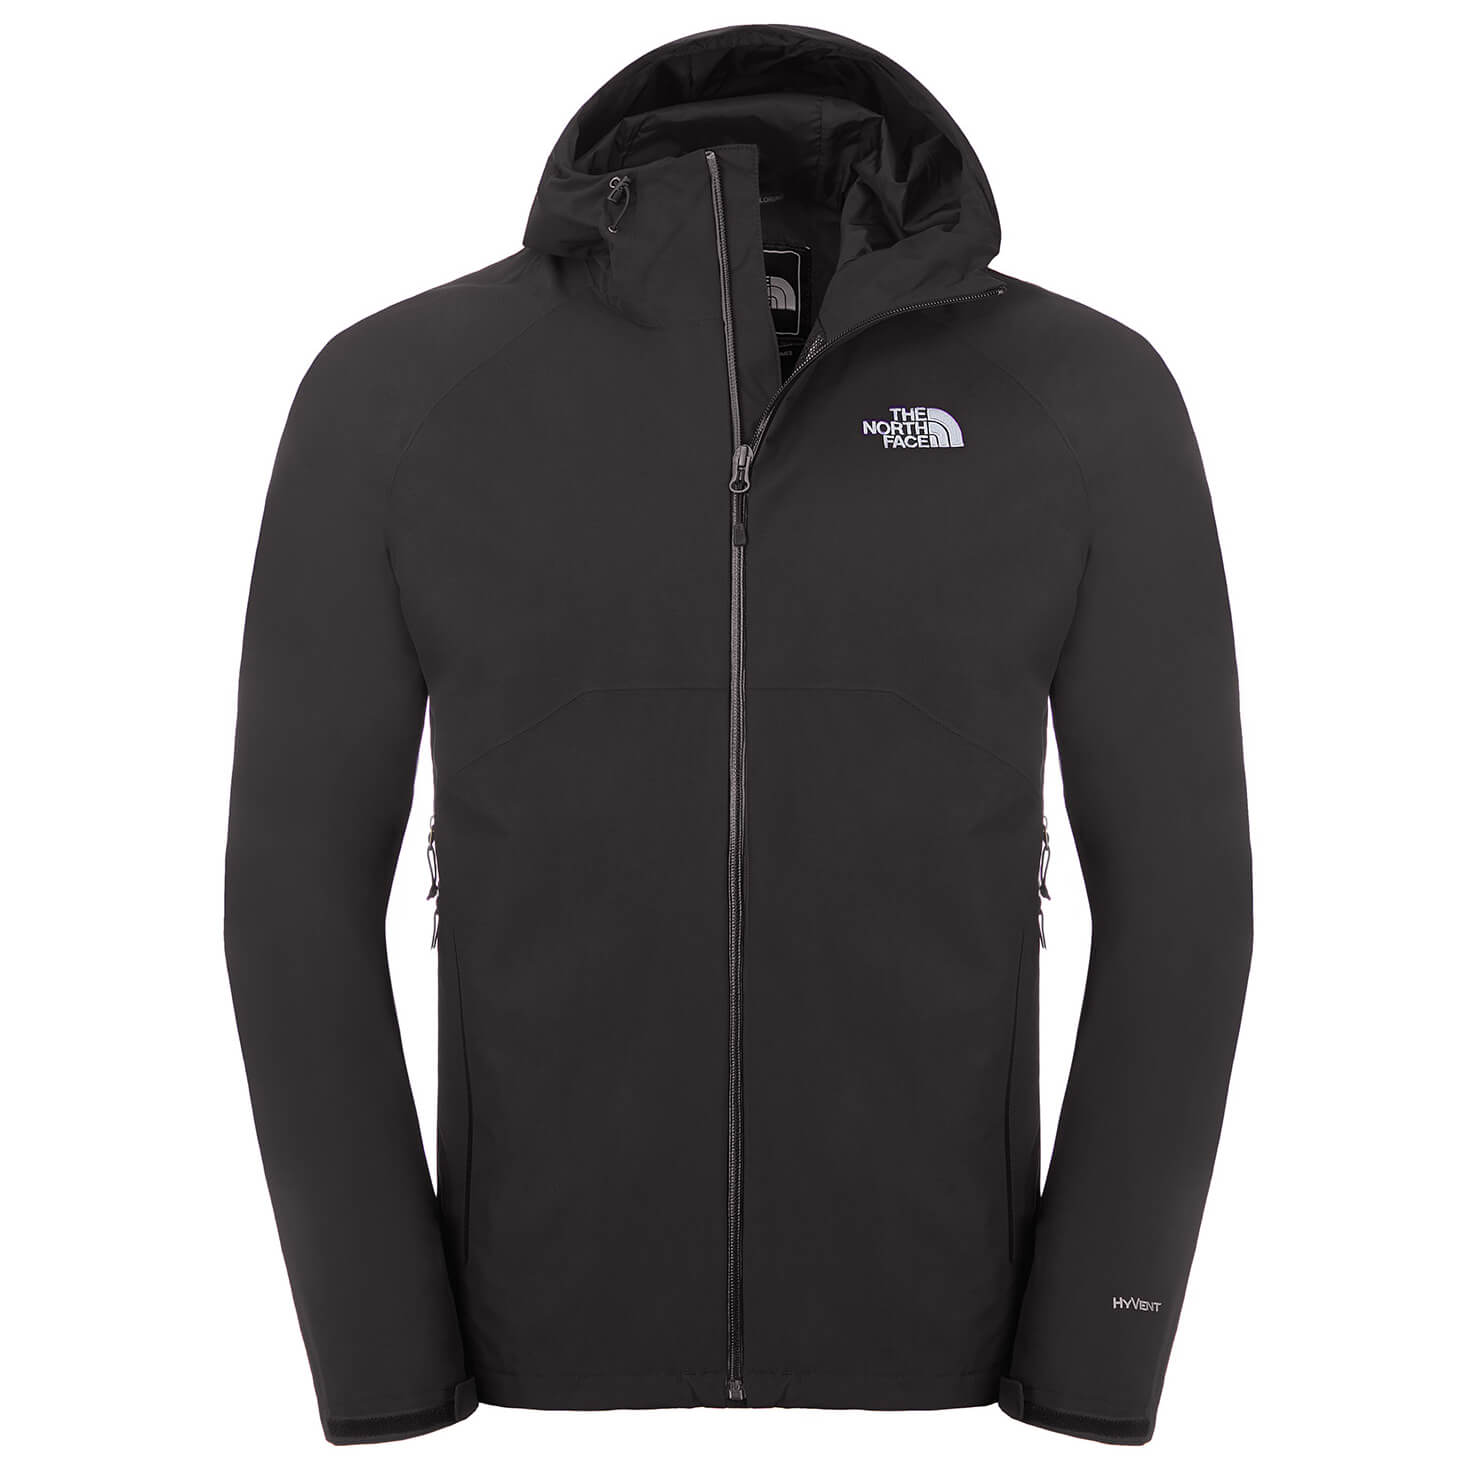 the north face stratos jacket hardshelljacke herren. Black Bedroom Furniture Sets. Home Design Ideas